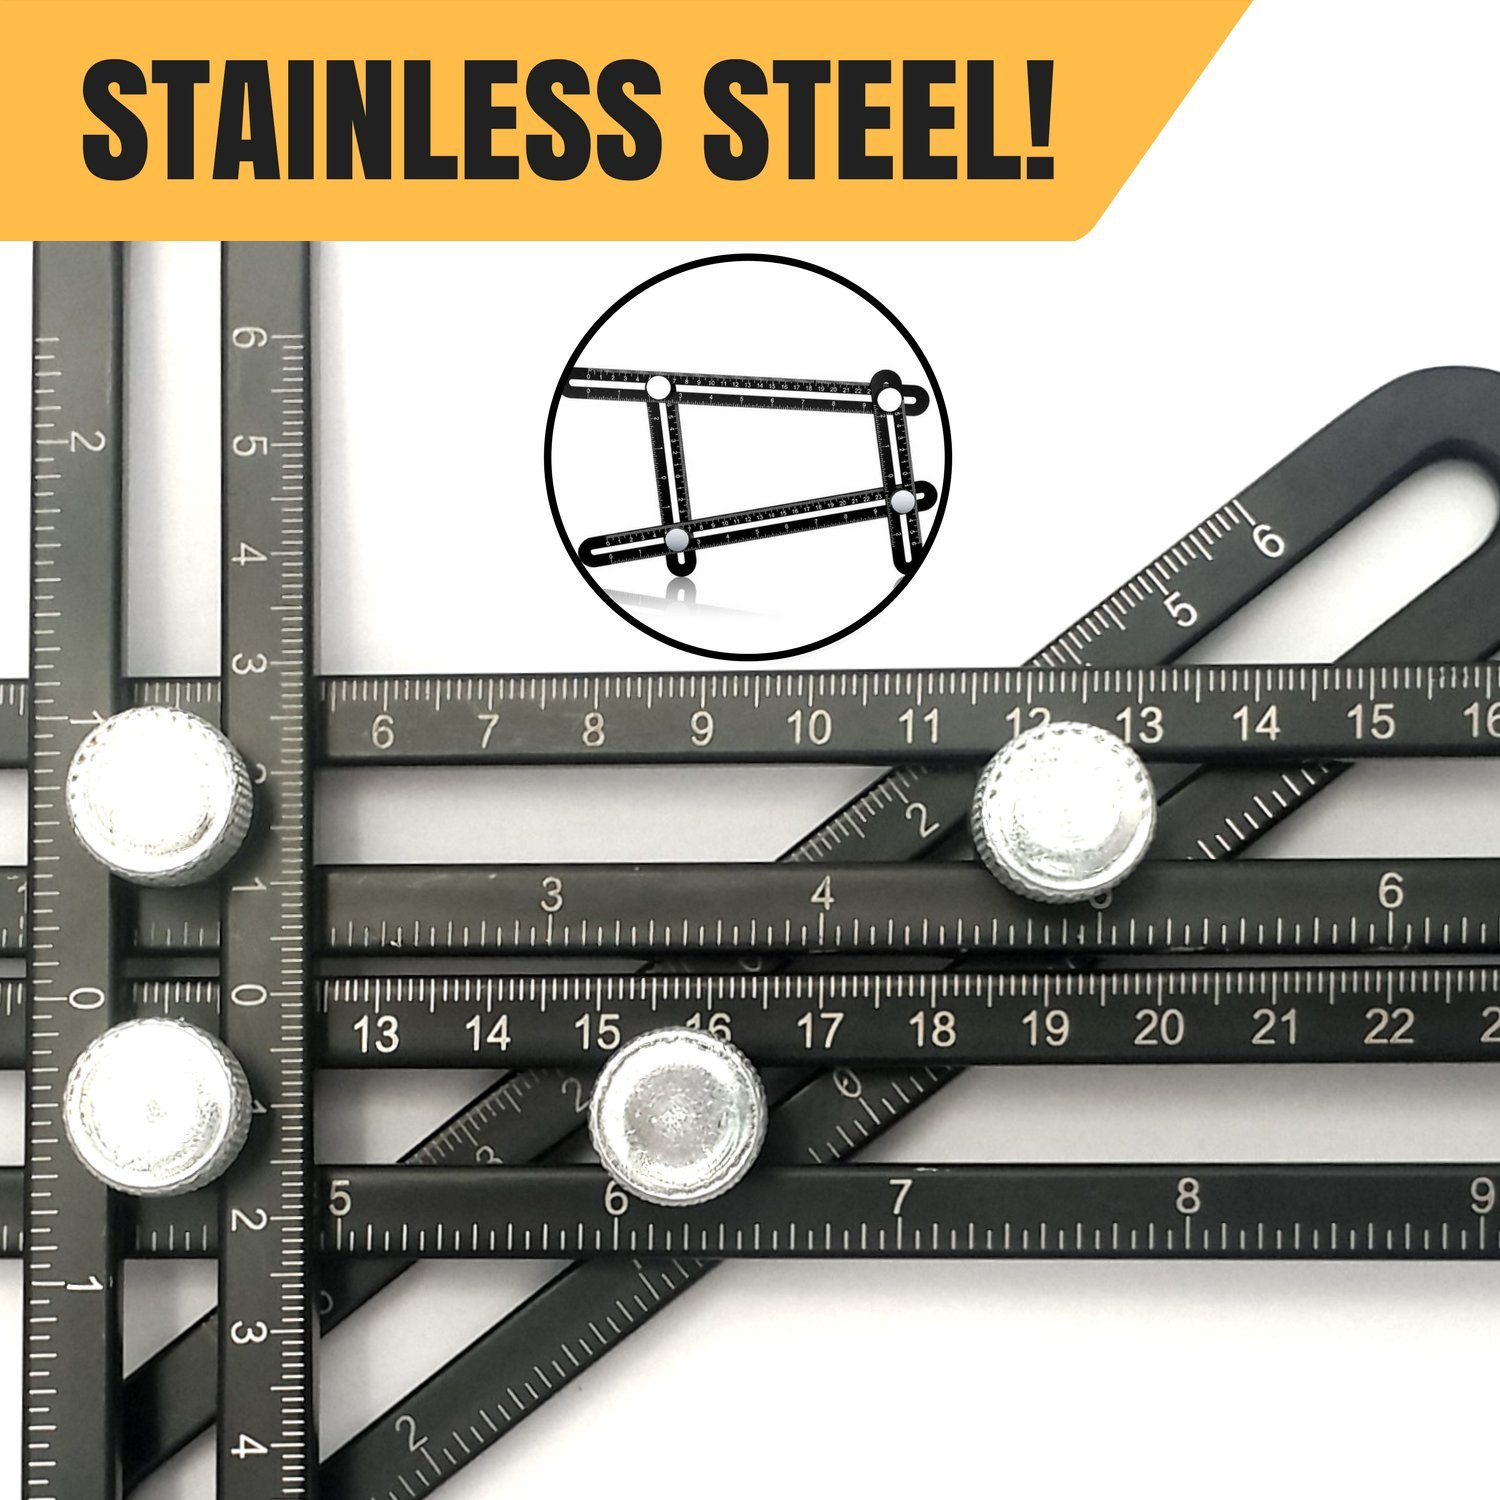 PILPOC Stainless Steel Multi Angle Measuring Ruler Stainless Steel Black Unbreakable Thick Angle Ruler Template Tool Laser Etched Markings Carpenter Pencil Cloth Case and Box